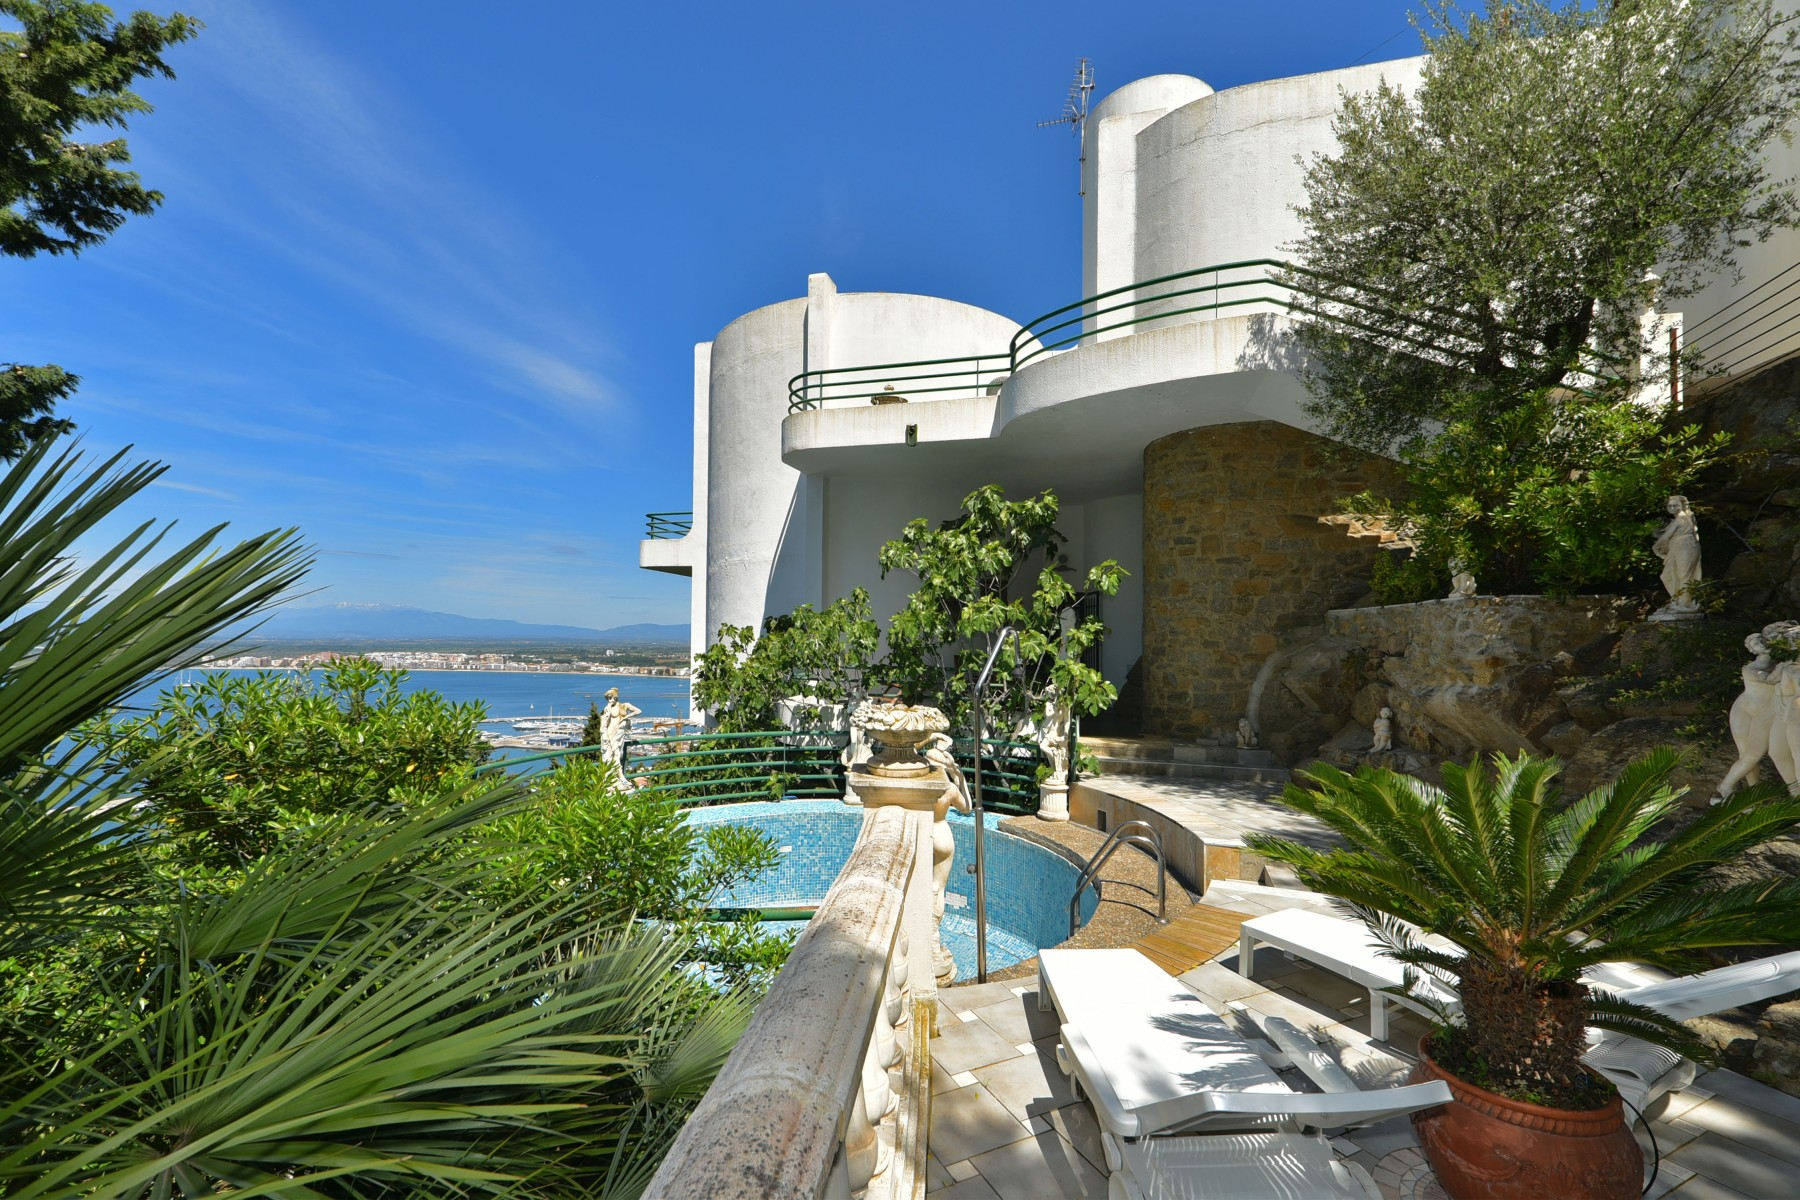 Single Family Home for Sale at Stylish house in Roses with sea views Roses, Costa Brava, 17480 Spain